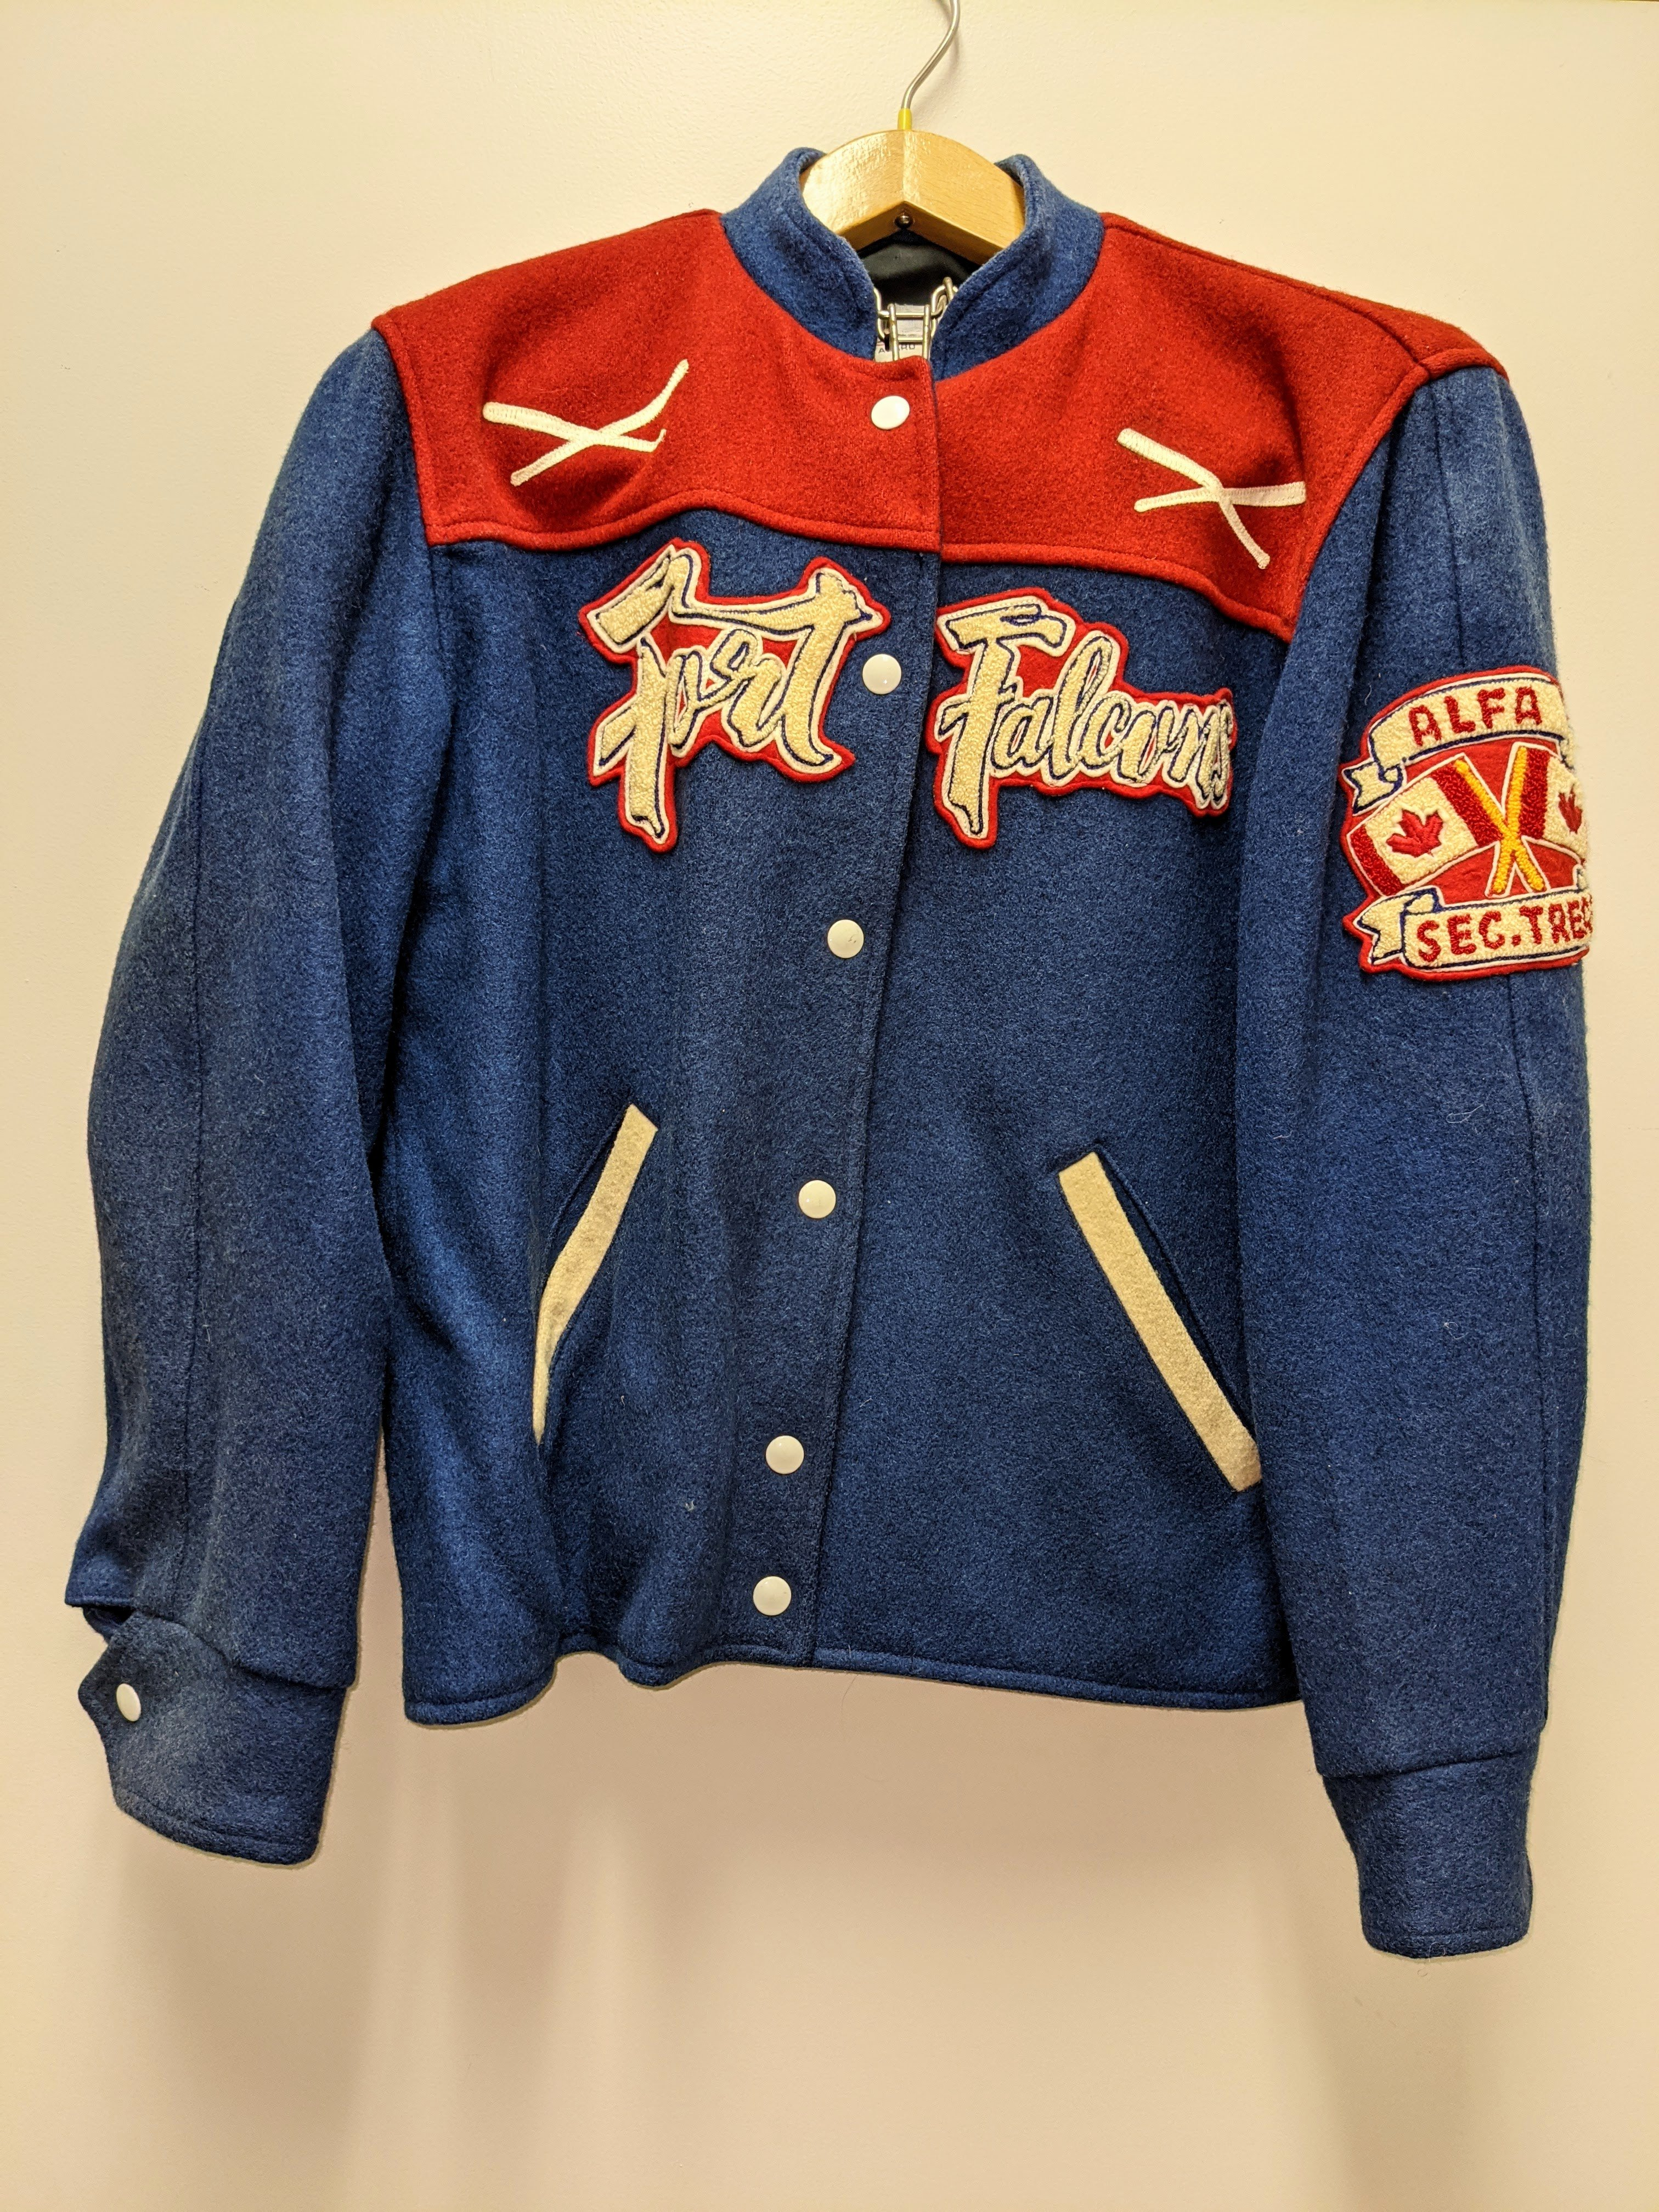 """A 1968 bomber jacket of the """"Fort Falcons"""" Baseball team is our artifact of the week! This jacket was owned by Alfa Twidale -as notated in the crest on the left sleeve. Alfa was the Secretary / Treasurer of the team in 1968. Competitive baseball has been enjoyed by Fort Vermilionaires for over a century. The earliest teams made up of neighbours from each locale  (Stony Point, Buttertown, Fort Vermilion) and played on grassy meadows!  30/08/2021 2004.03.138 / Twidale, John + Alfa"""